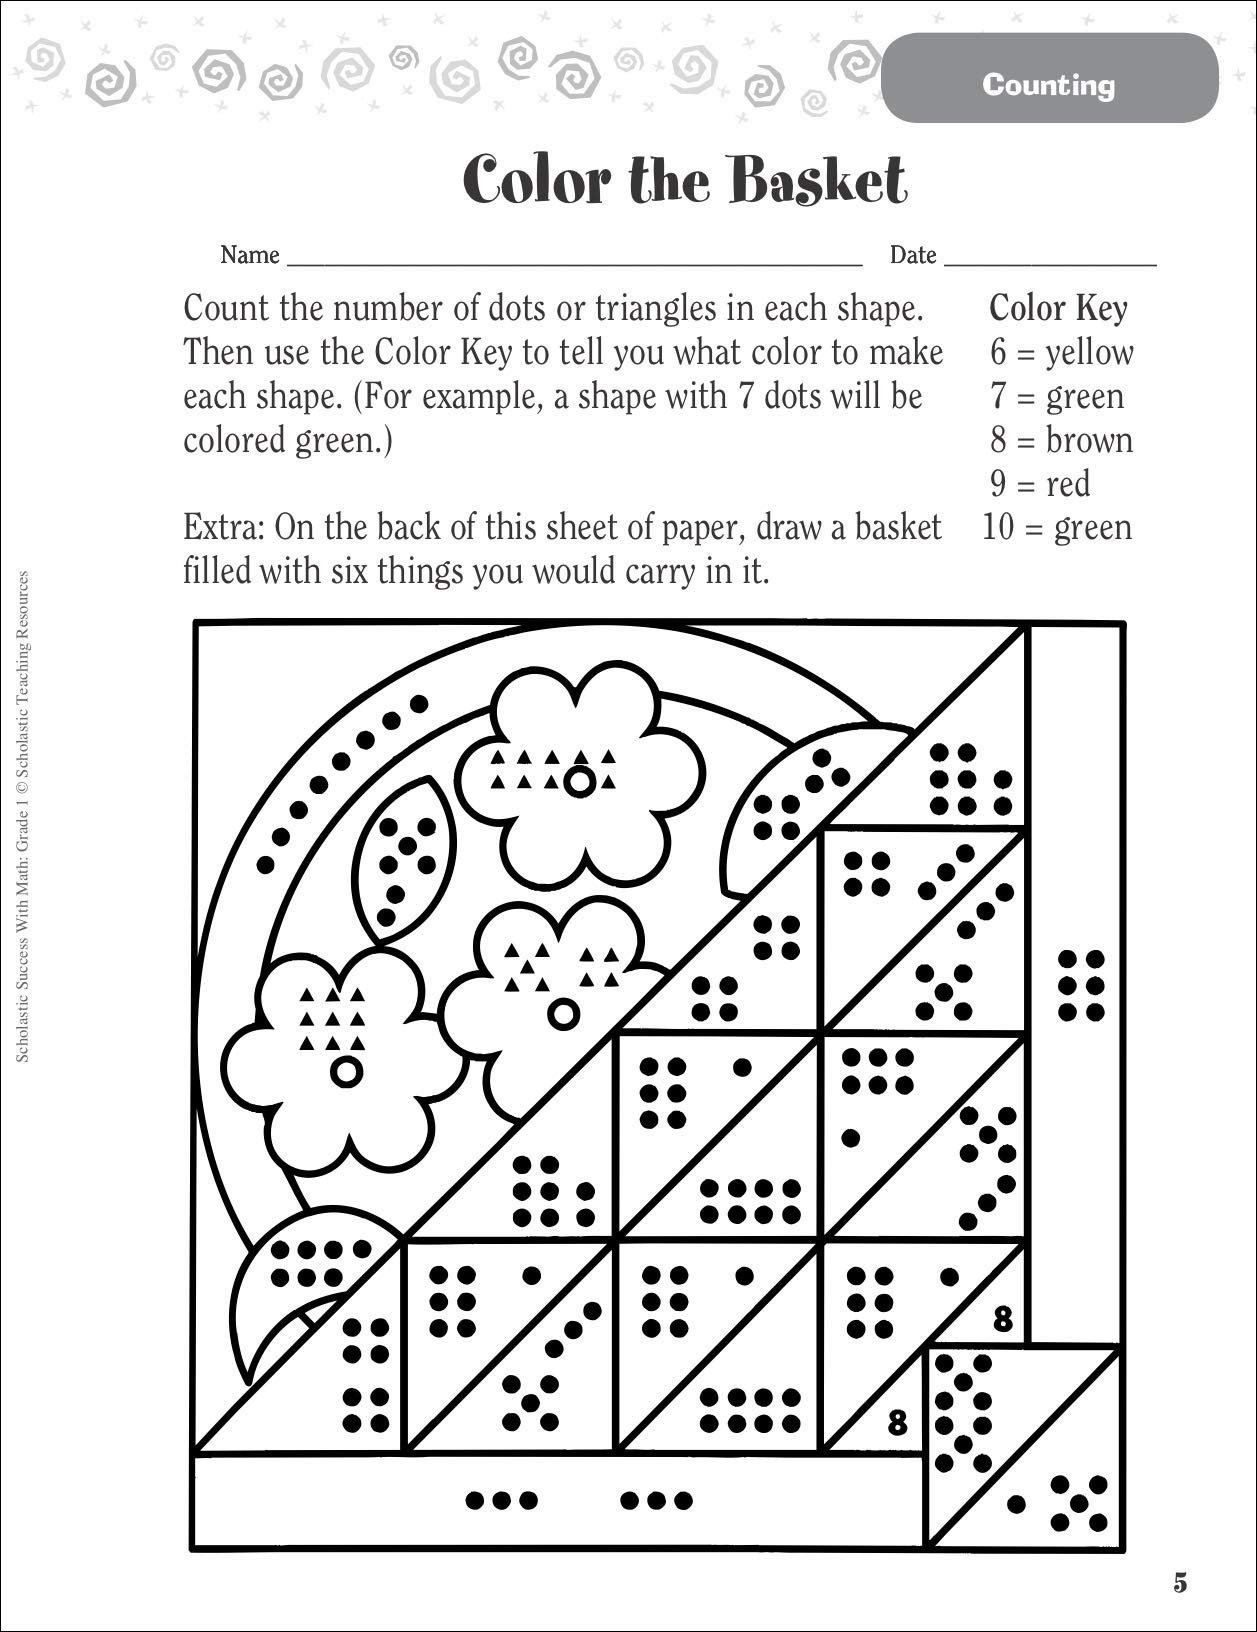 free math worksheets first grade 1 subtraction subtracting 1 digit from 2 digit no regrouping of free math worksheets first grade 1 subtraction subtracting 1 digit from 2 digit no regrouping 3